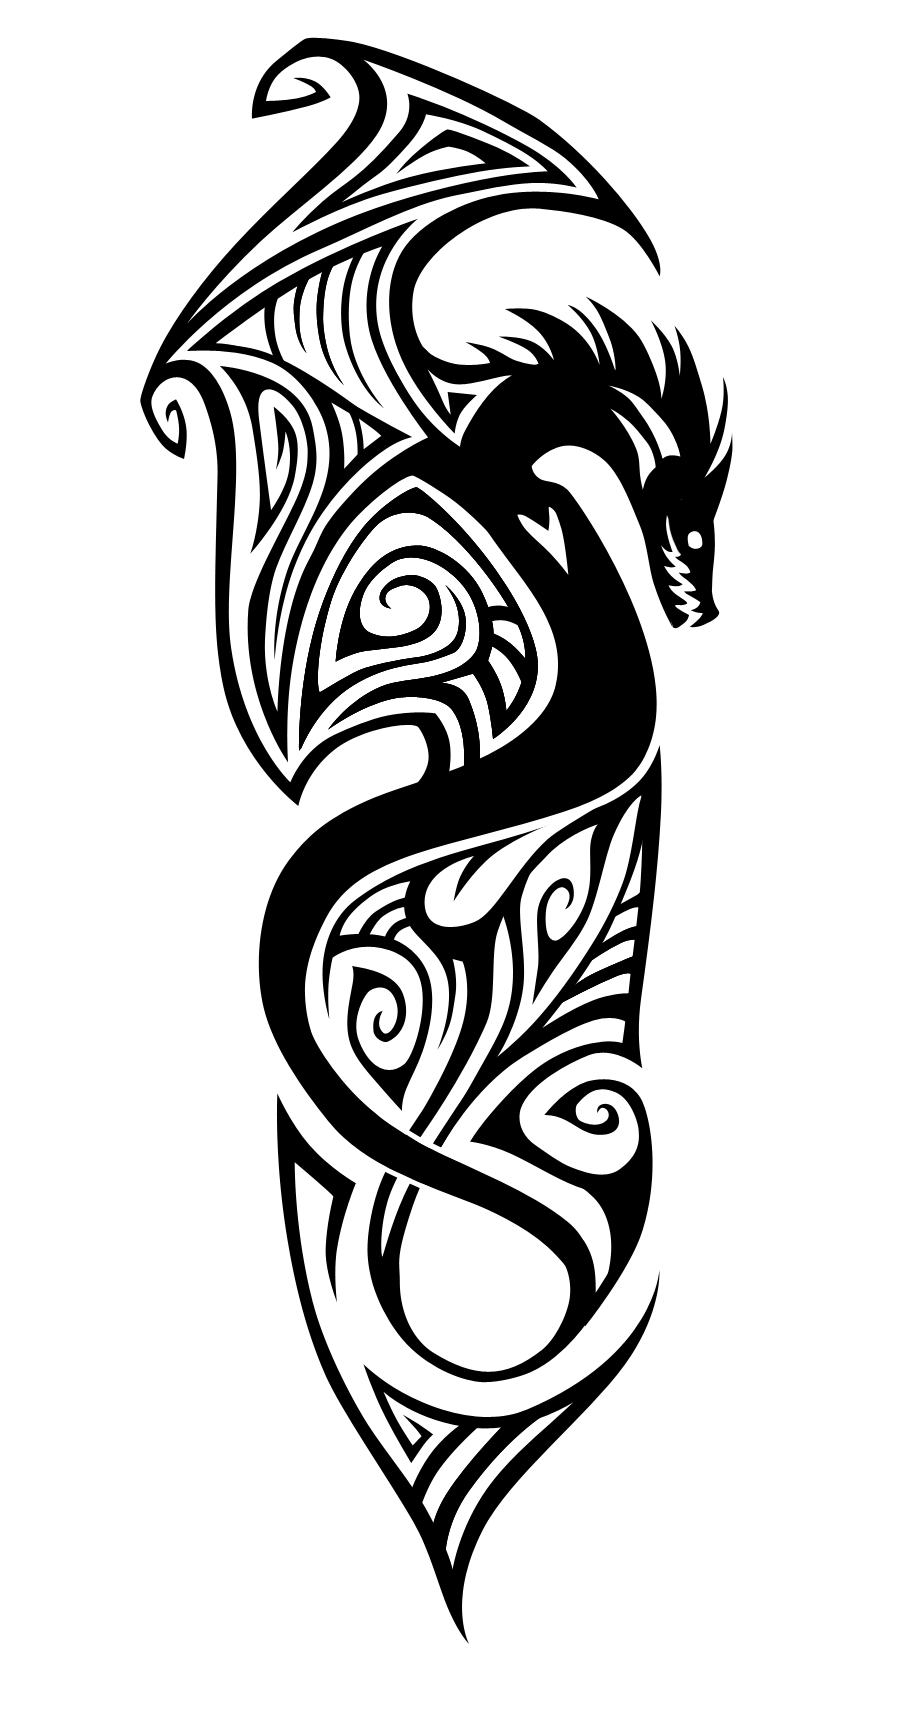 Arm Tattoos Png 1 Png Image